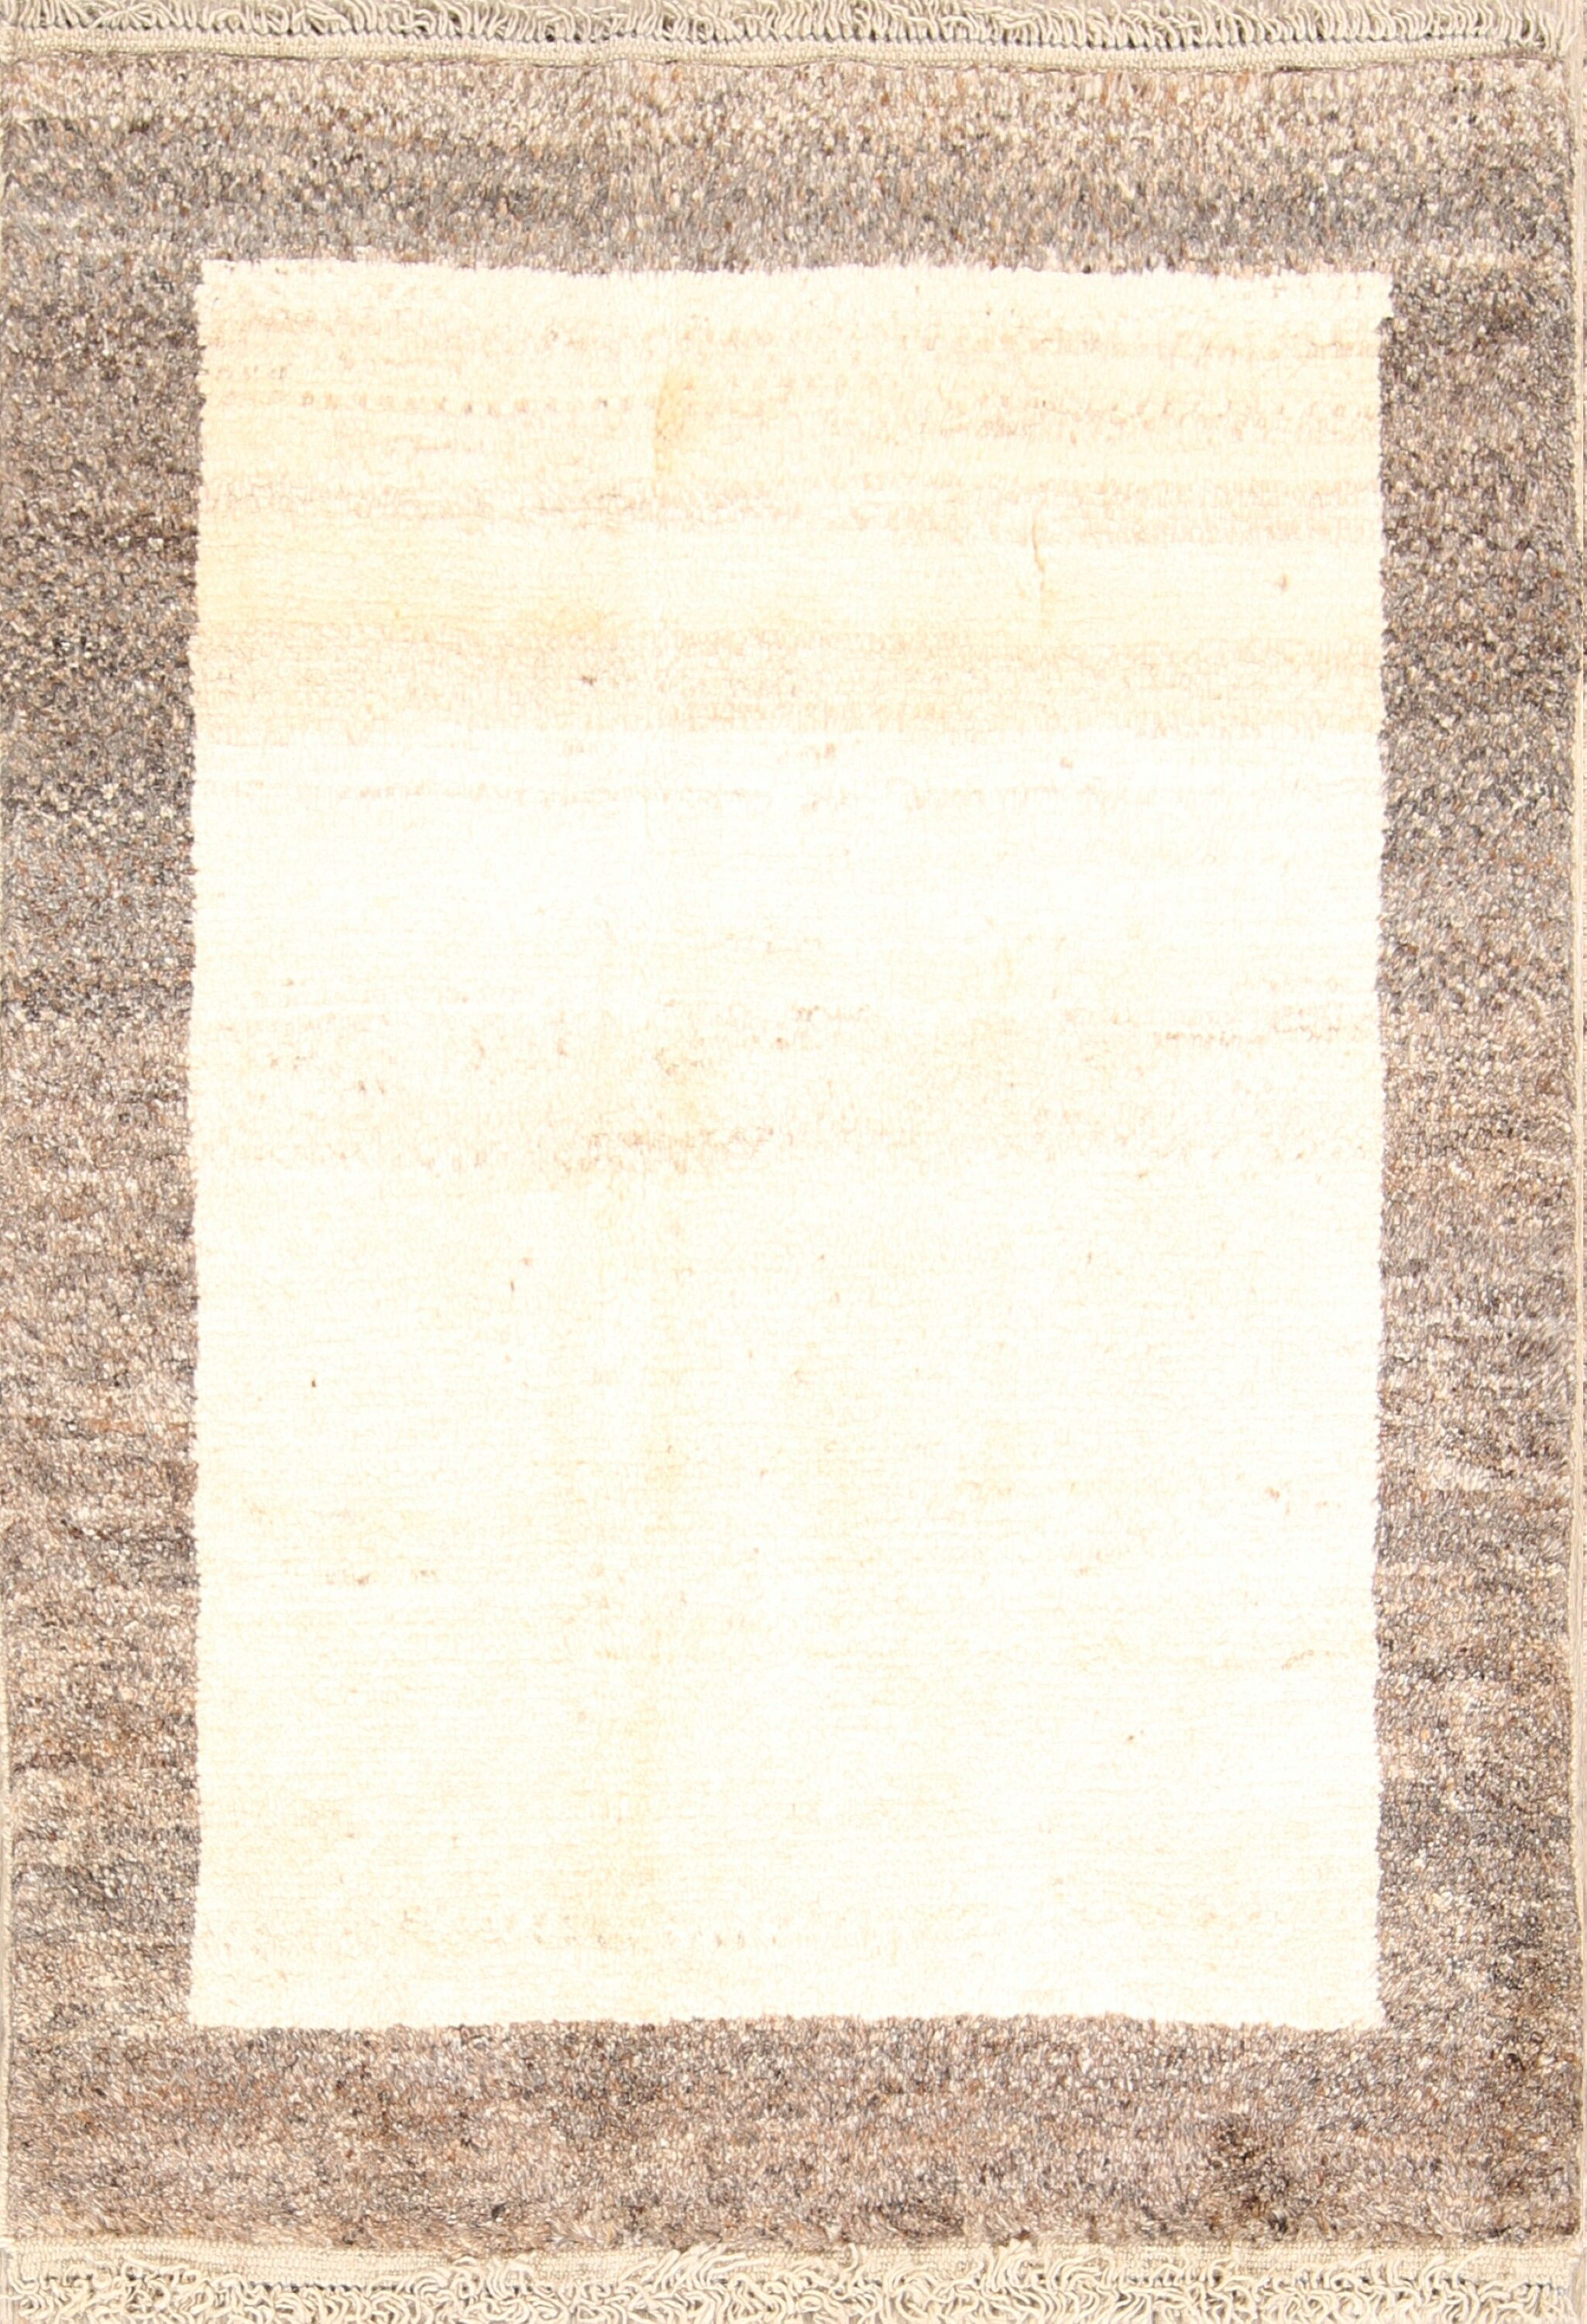 One-of-a-Kind Gabbeh Shiraz Persian Modern Hand-Knotted 2'8